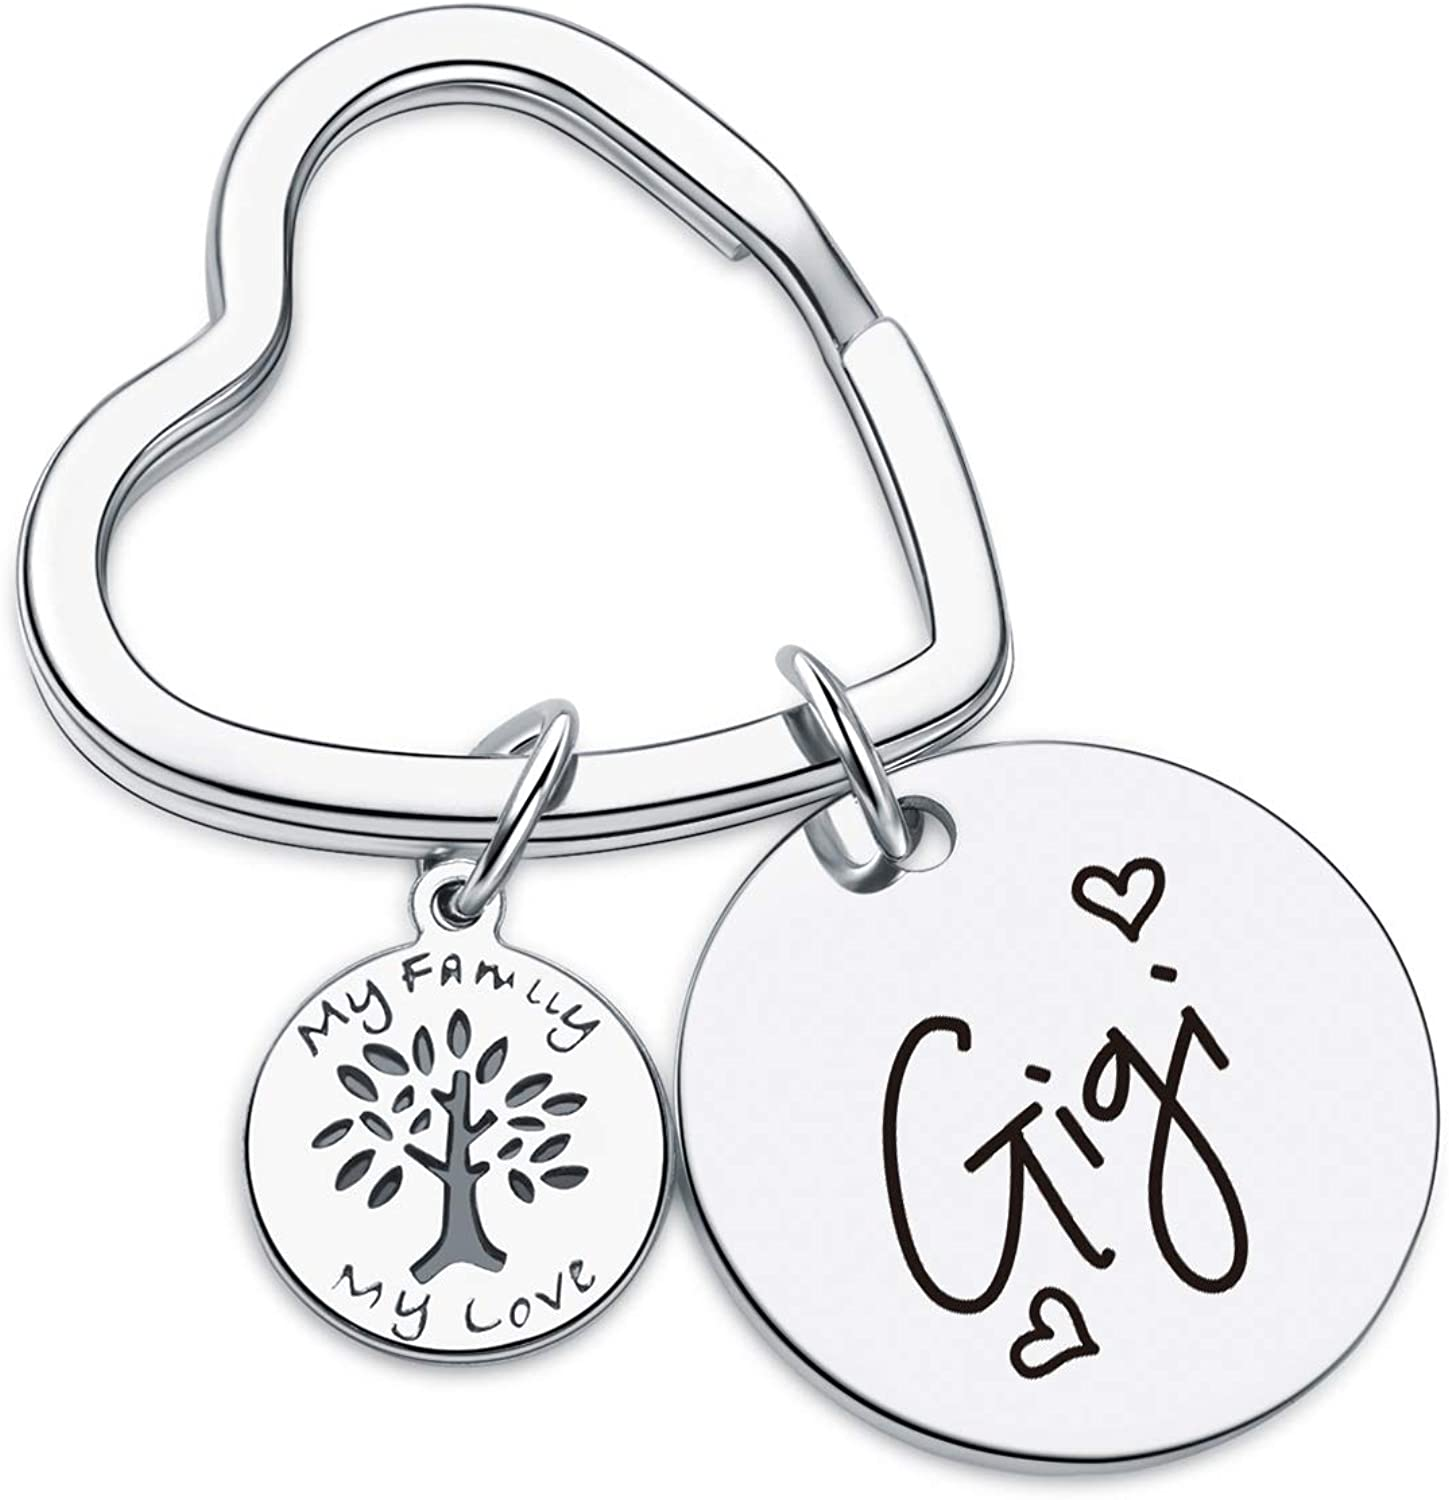 7RVZM Manufacturer regenerated product Gigi Appreciation Outlet ☆ Free Shipping Gift Best Keychain Mothers Day Ever